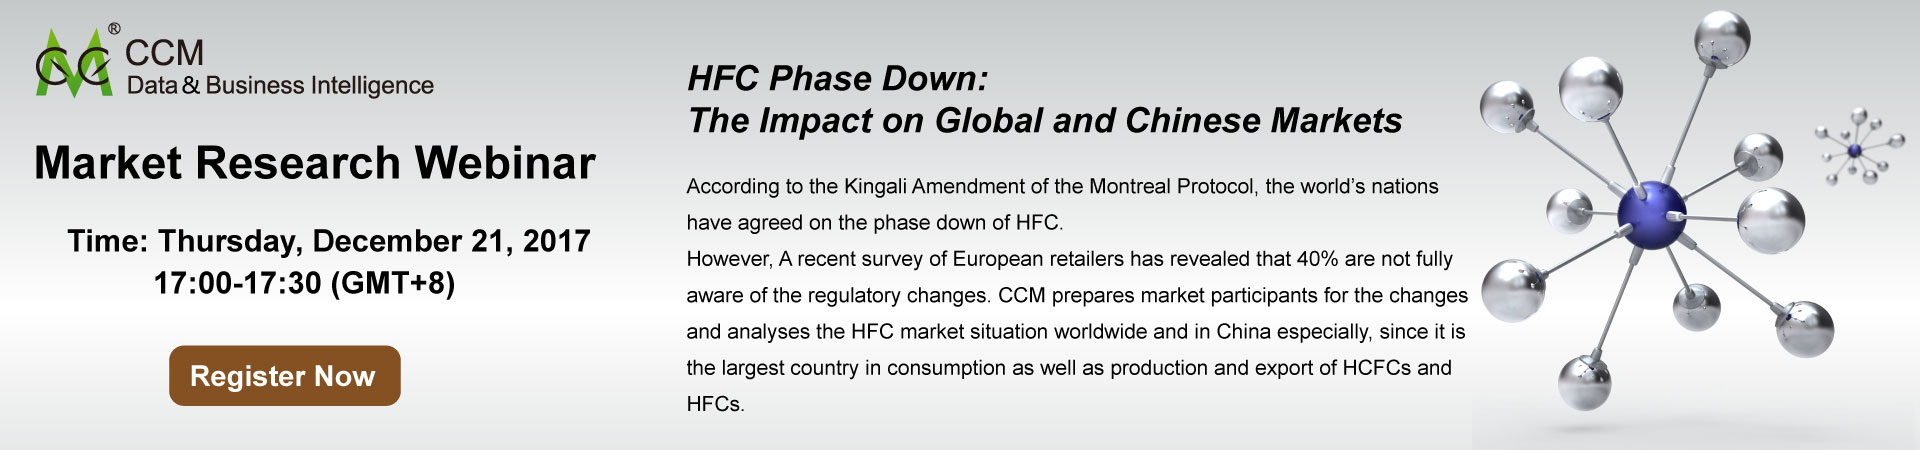 HFC Phase Down: The Impact on Global and Chinese Markets